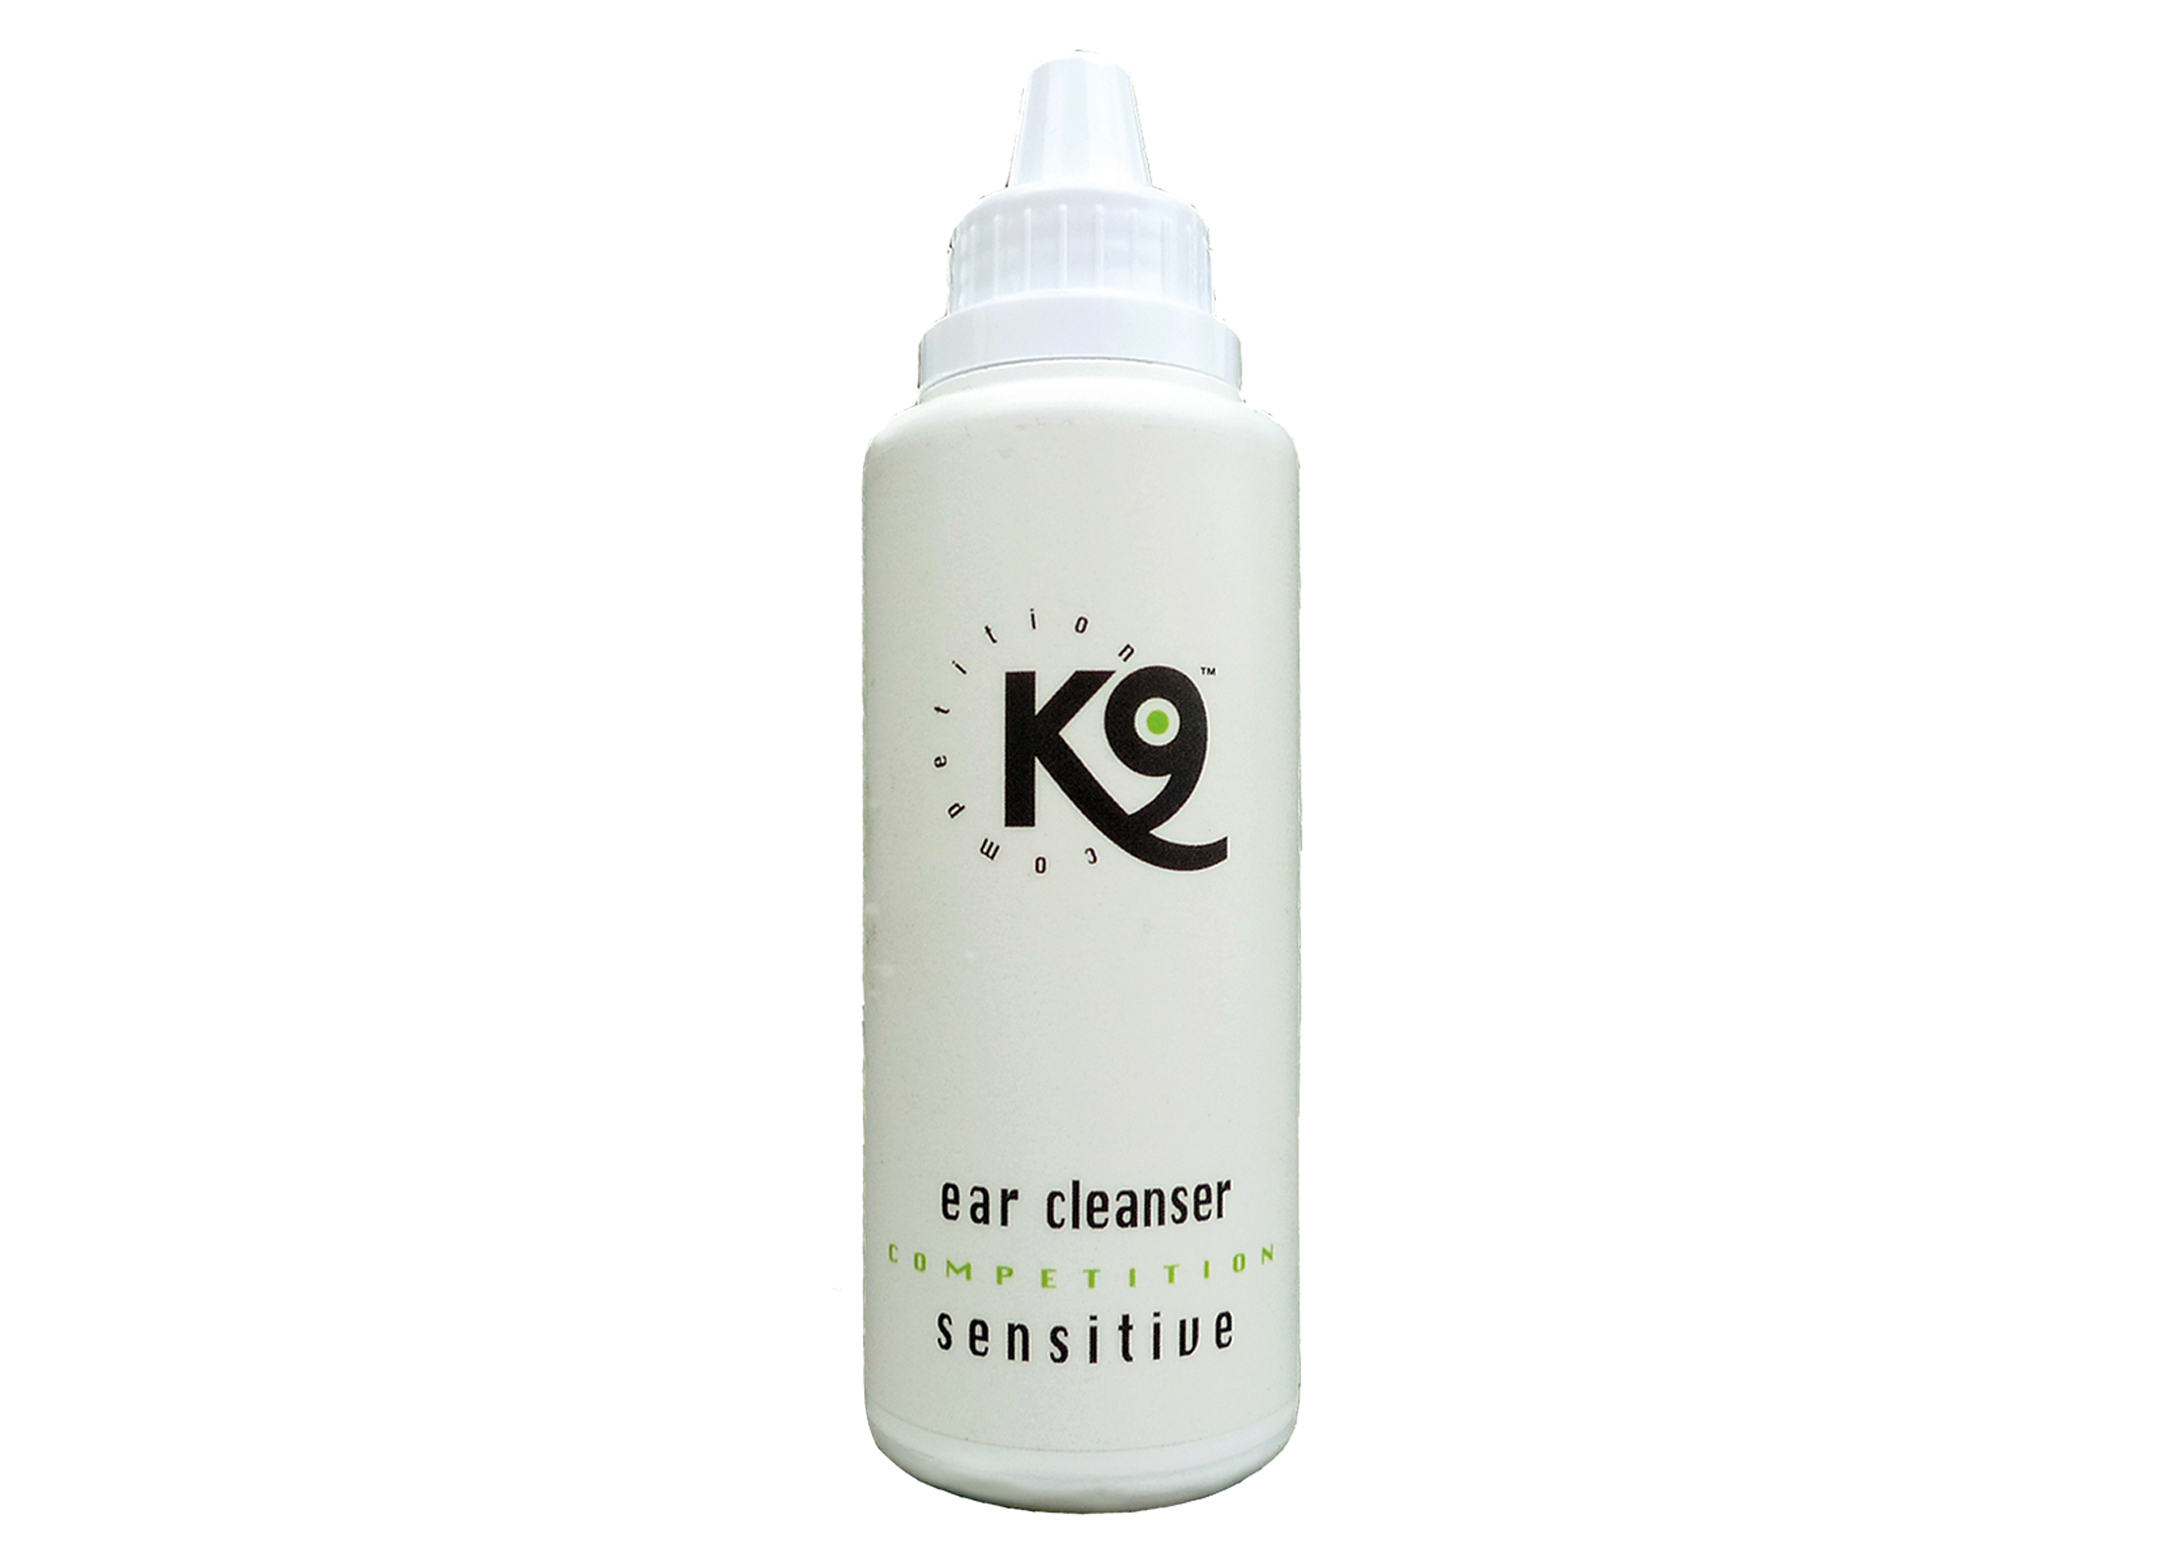 K9 Ear Cleaner Sensitive 150 ml Ear Cleaner